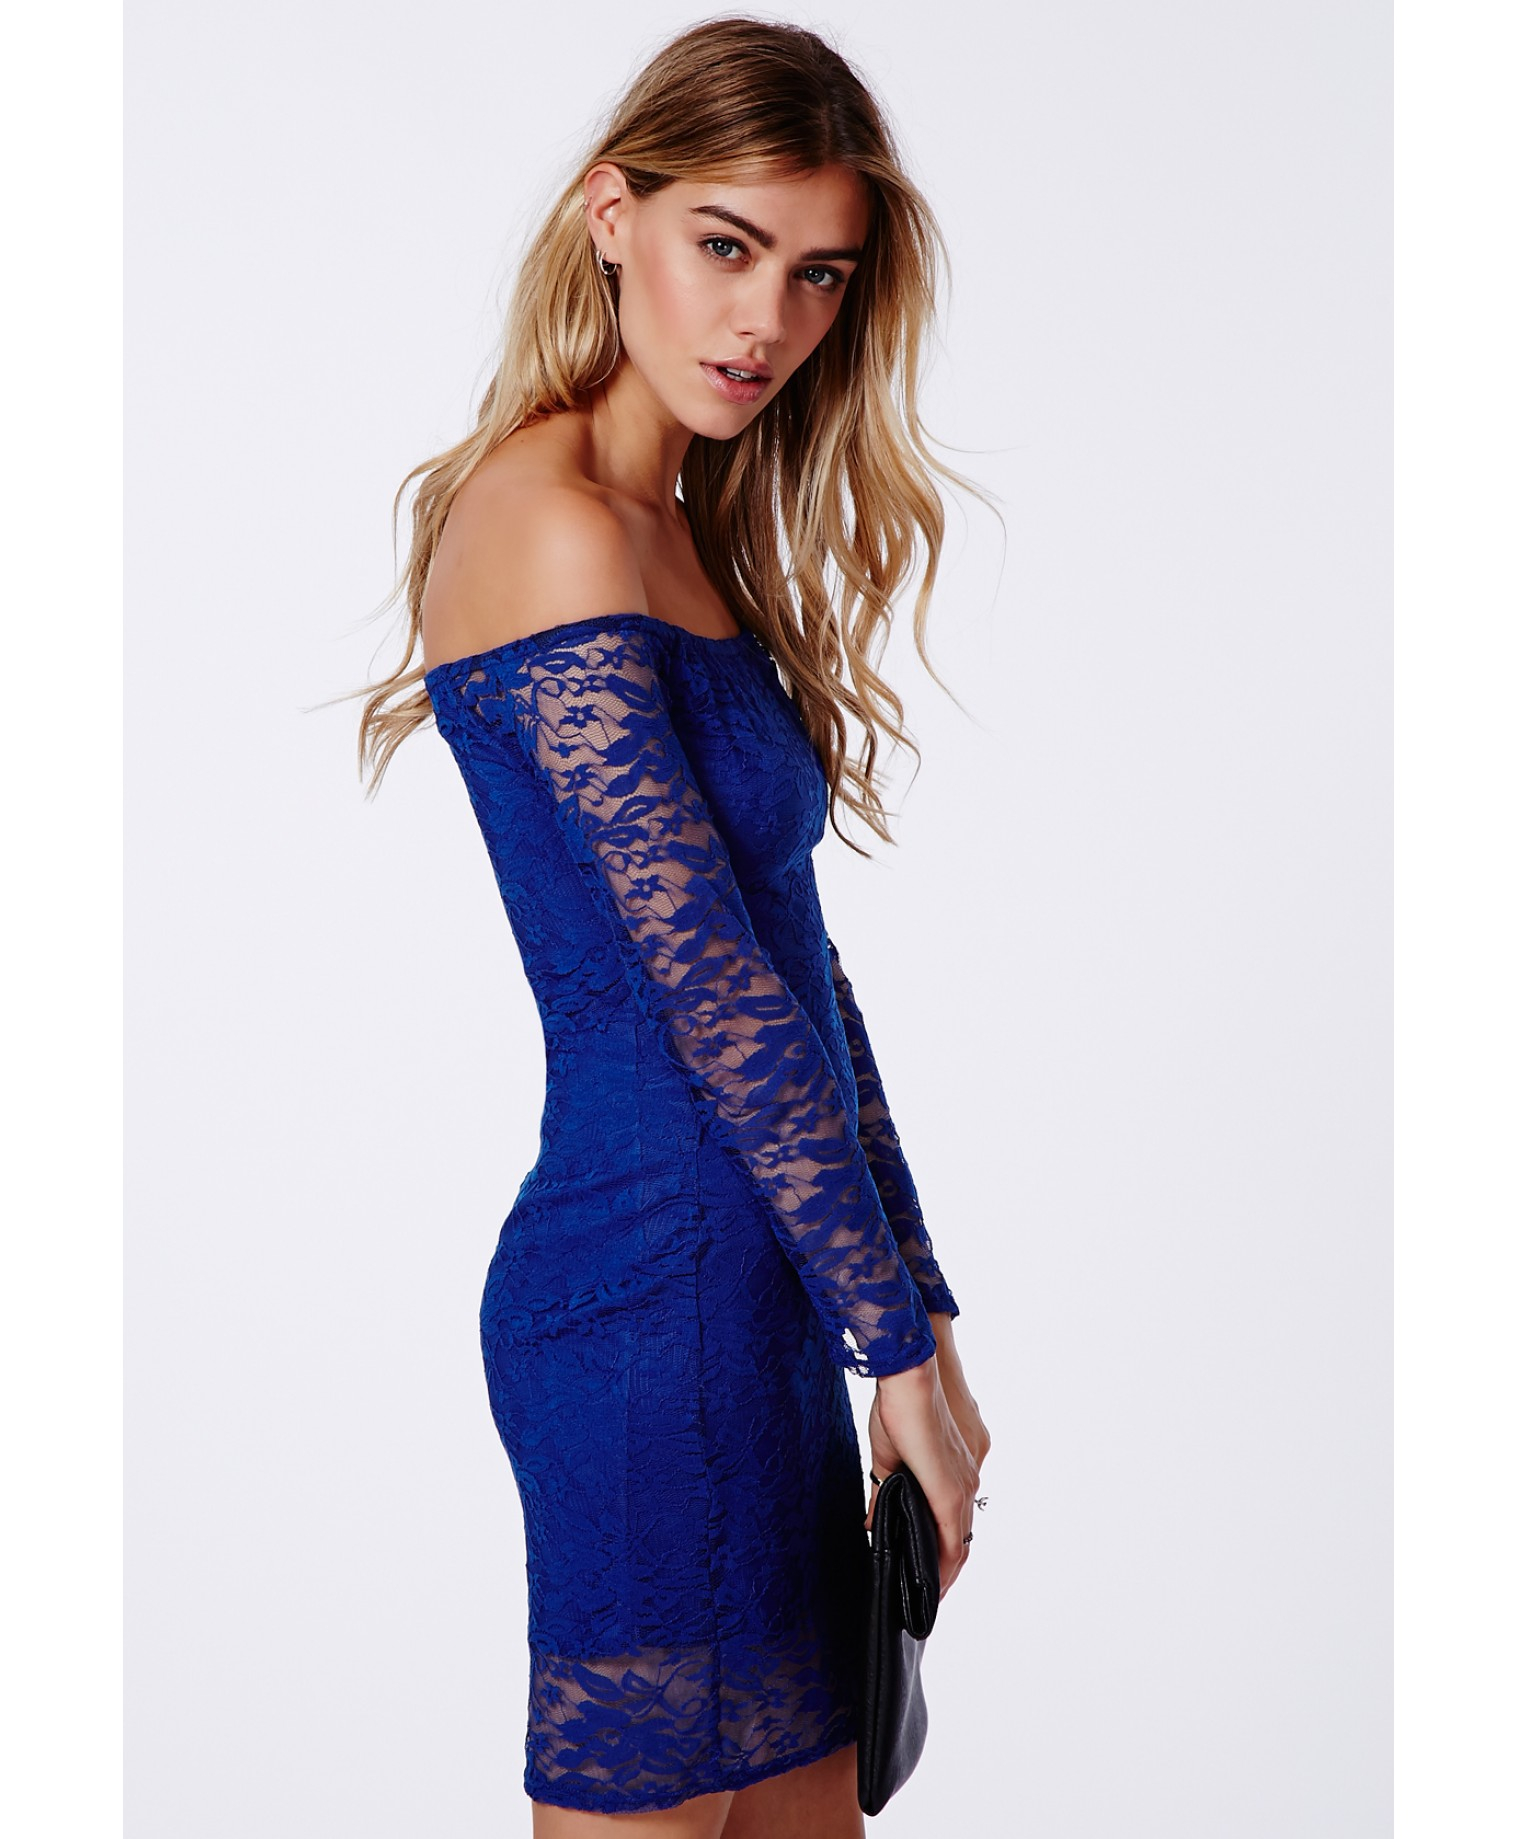 bac86b0eeafa Lyst - Missguided Gracie Lace Bardot Bodycon Dress Cobalt Blue in Blue